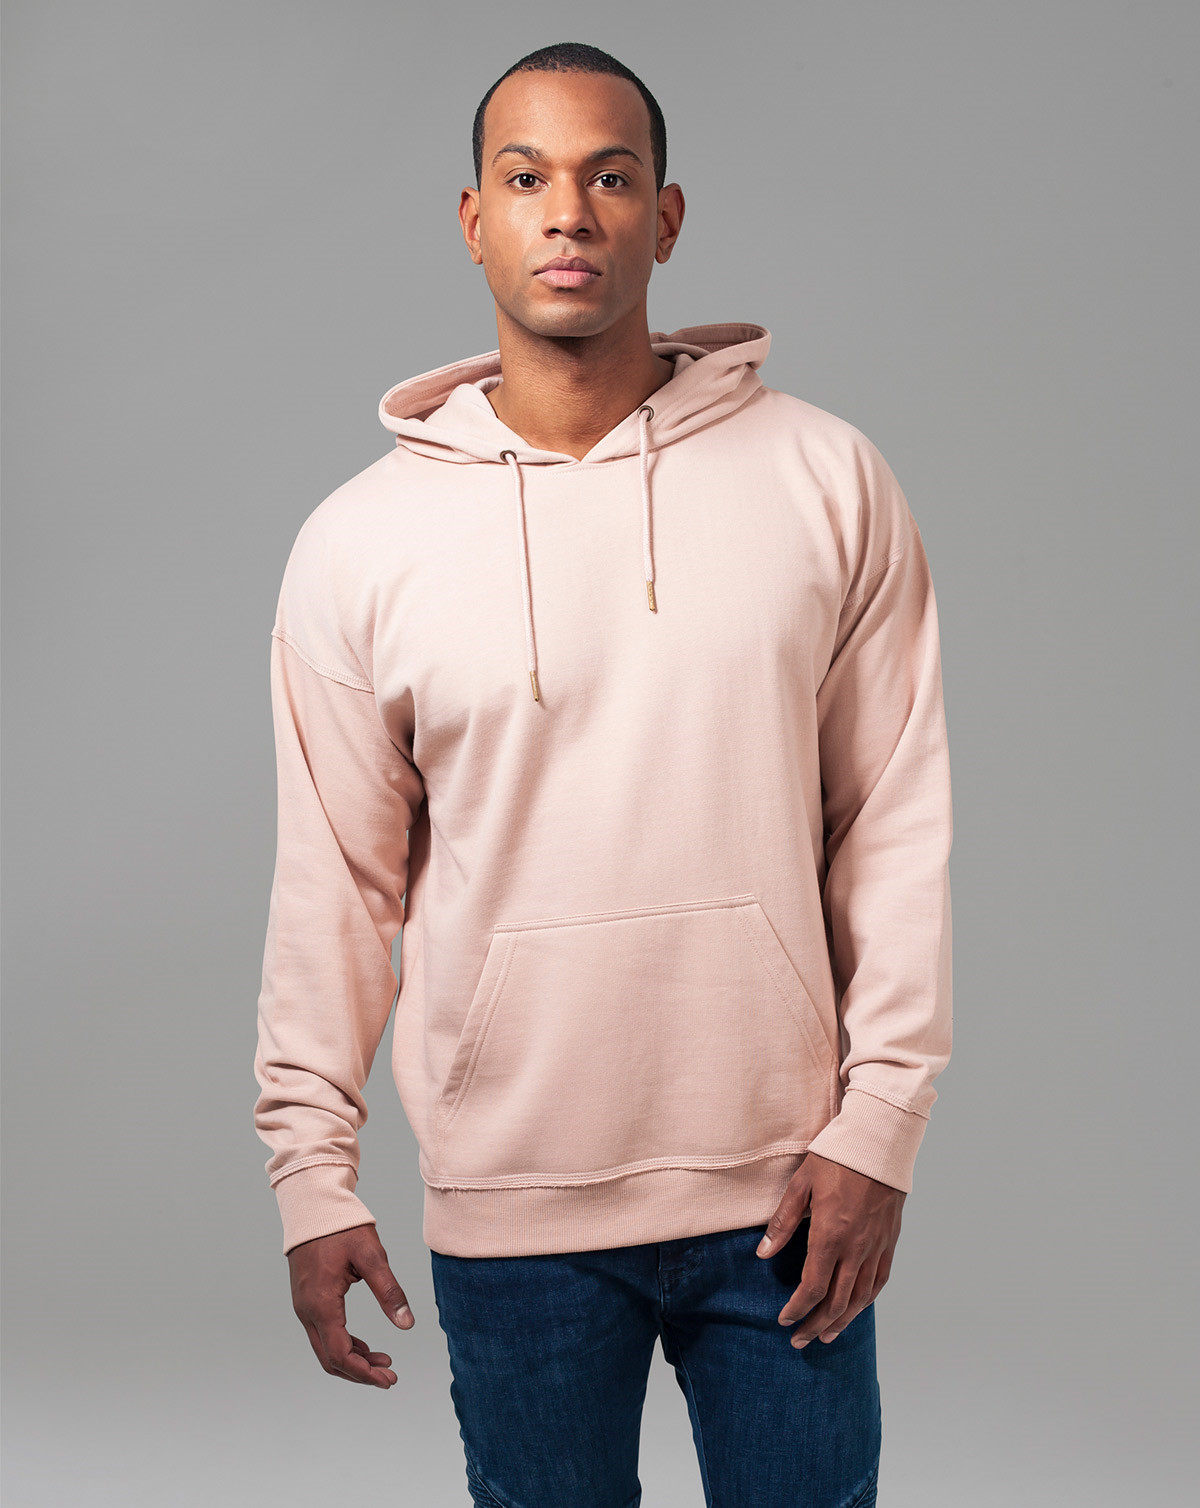 Urban Classics Oversized Sweat Hoody (Light Rose, 2XL)